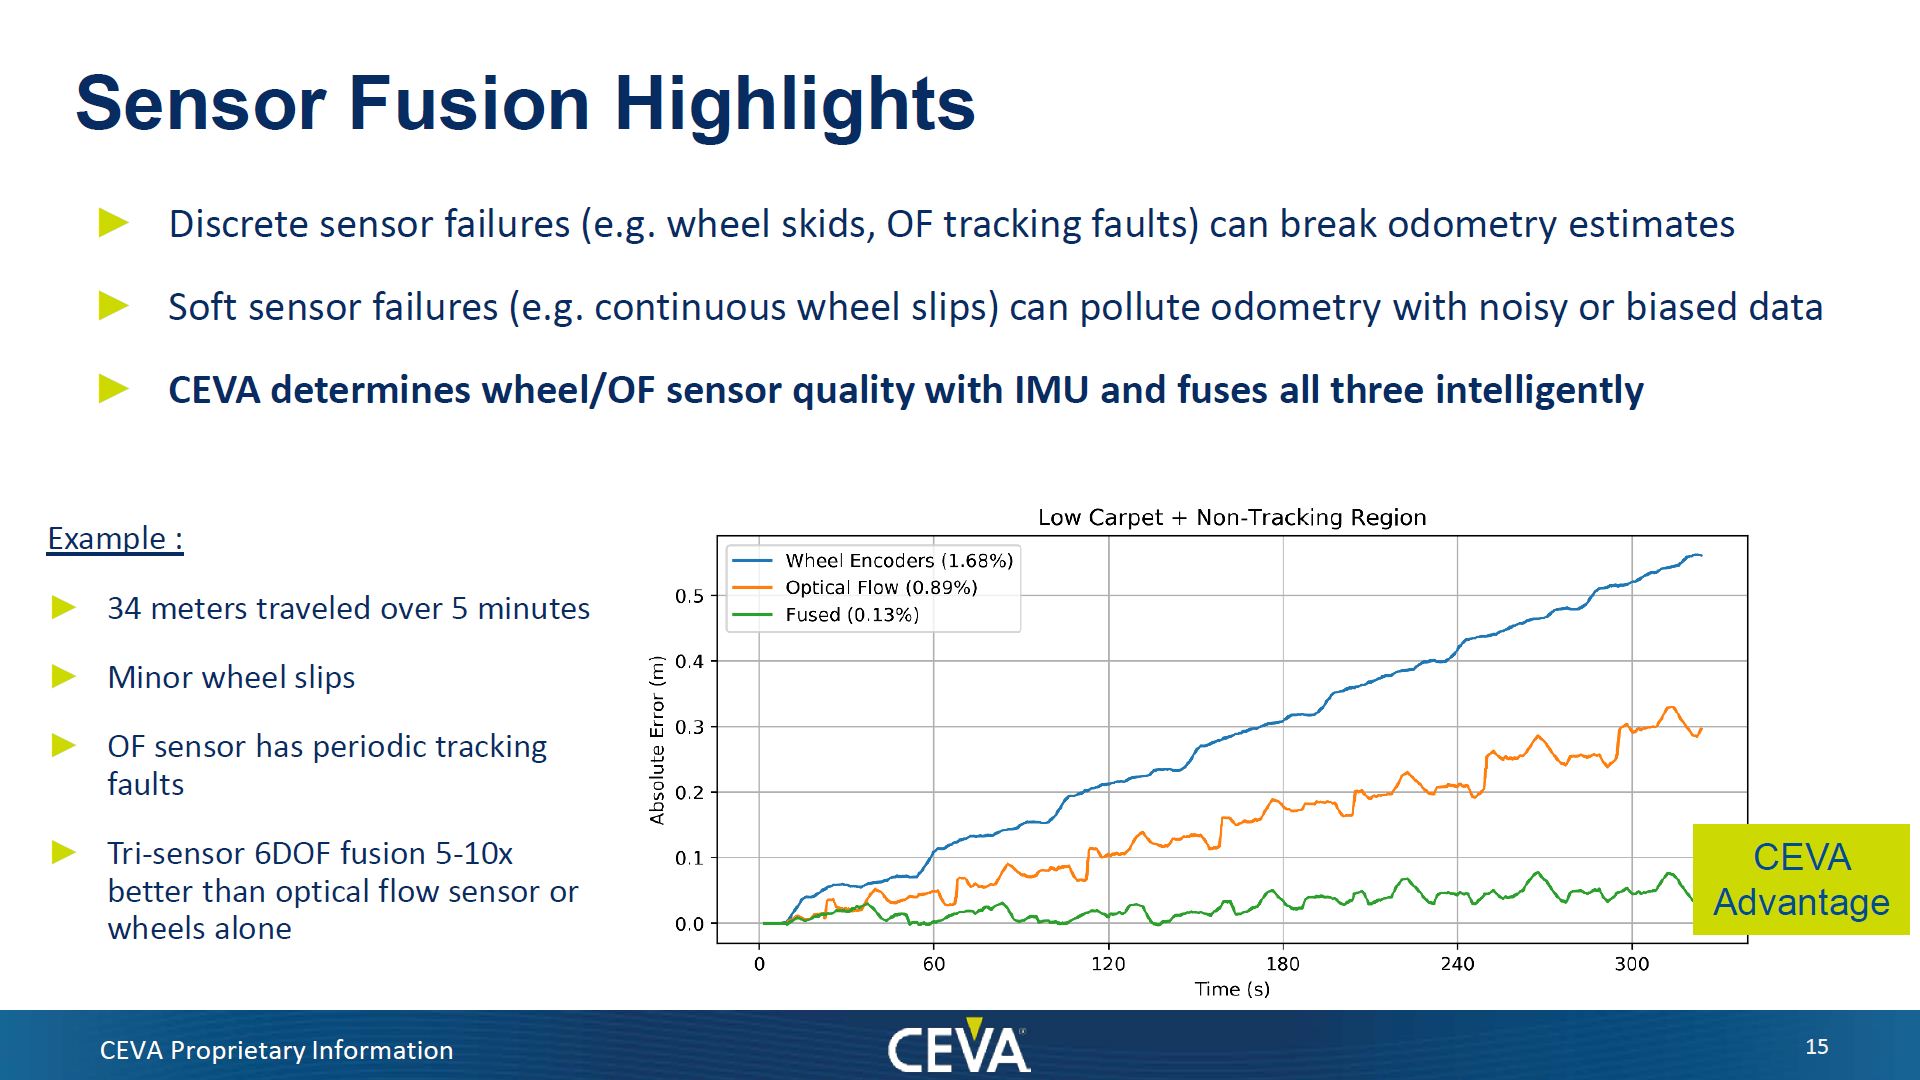 Sensor Fusion Highlights